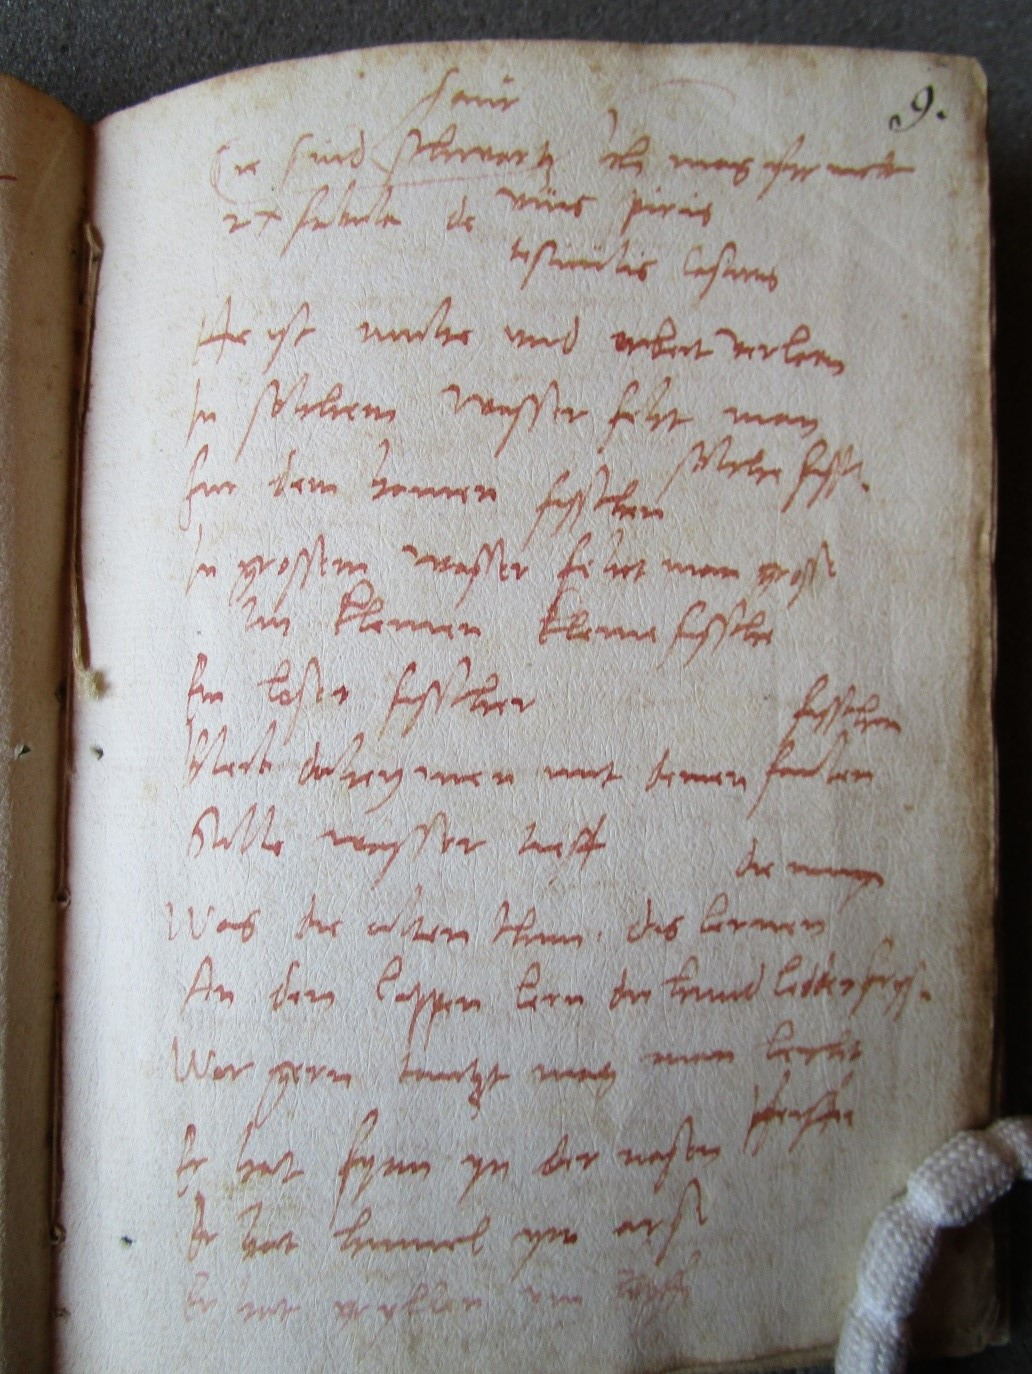 Bodleian Library MS Add. A. 92, p. 9. Photo: Alexander Peplow. Reproduced with permission of the Bodleian Libraries